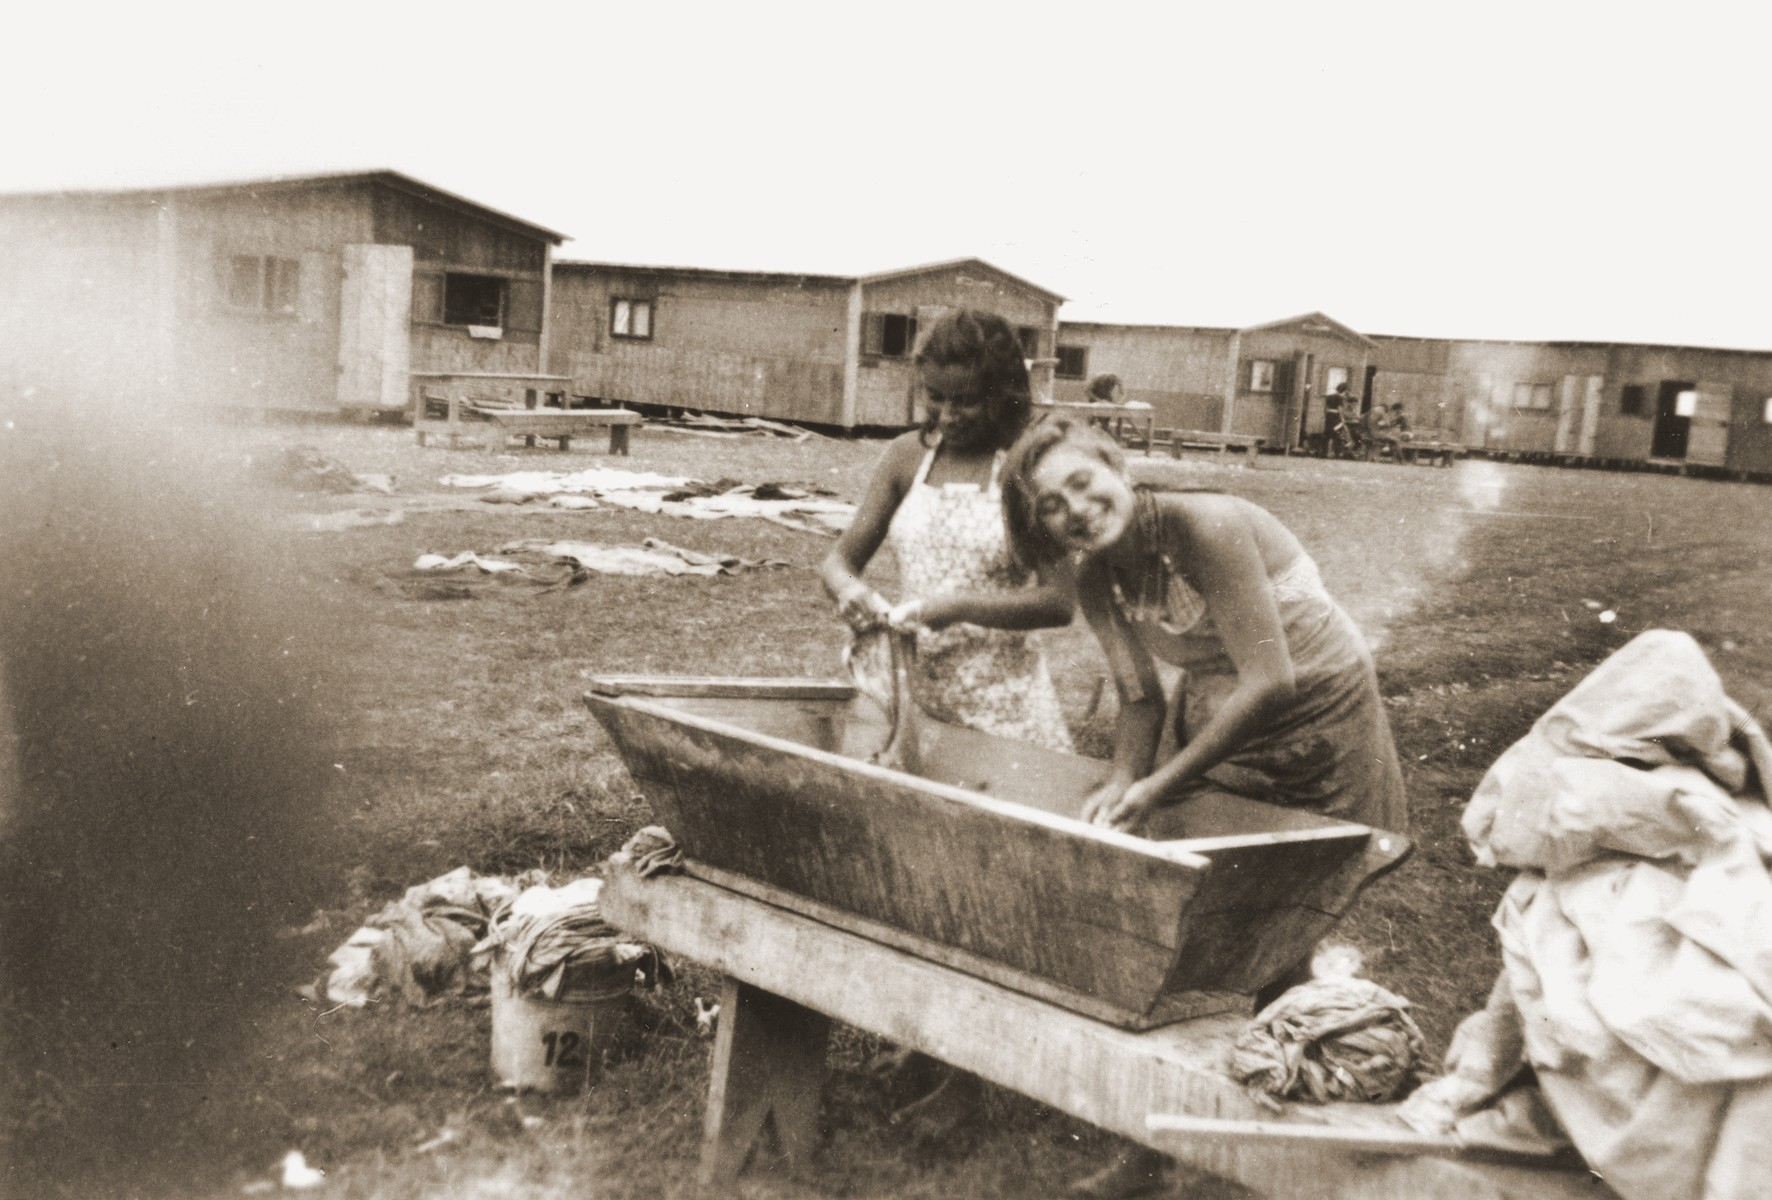 At a refugee camp established for members of the Kladovo transport, two Jewish girls do the laundry in a trough outside their barracks.